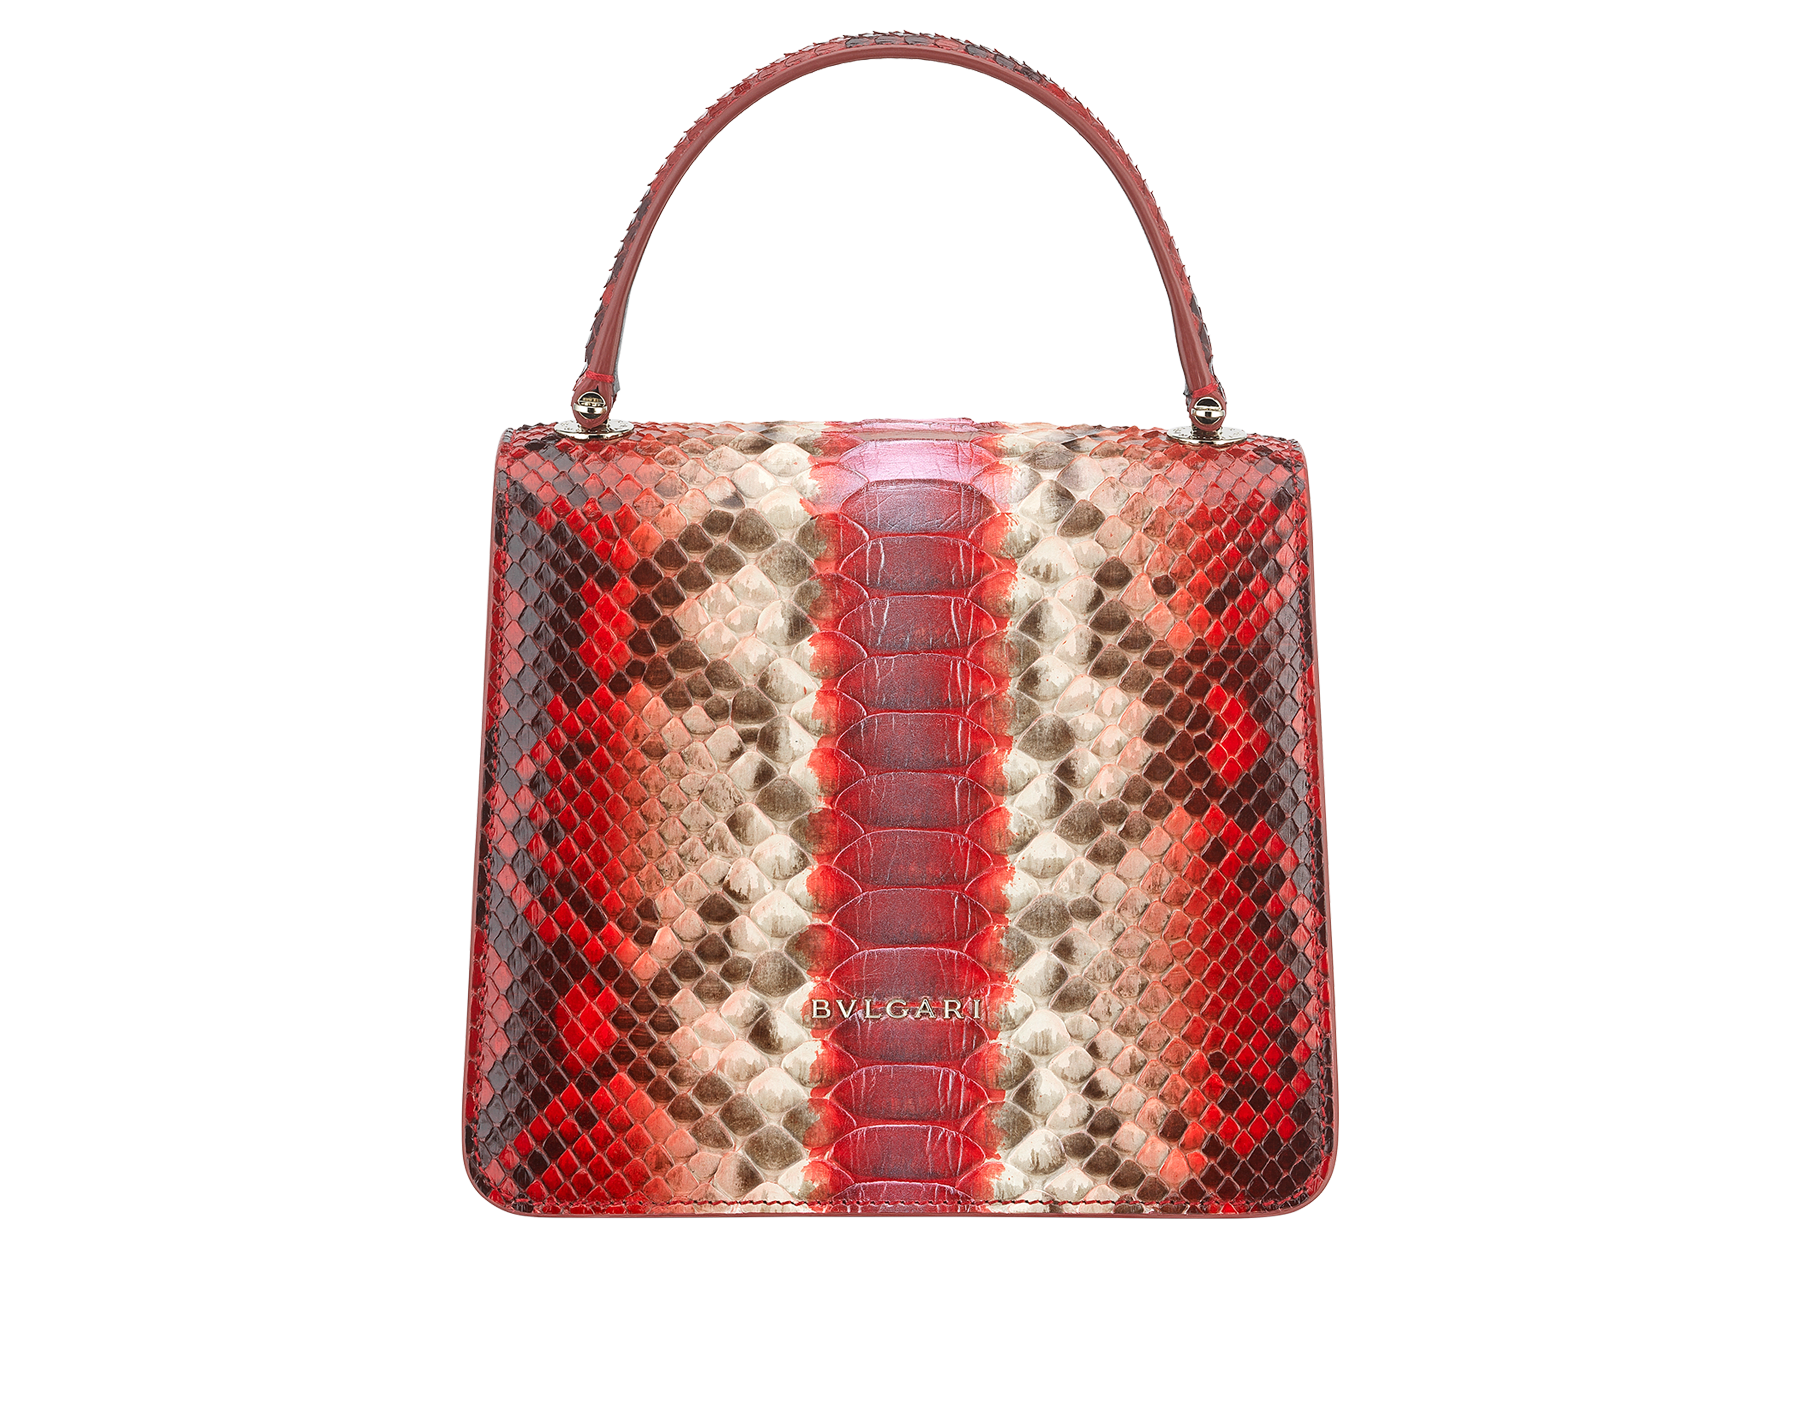 """Serpenti Forever "" crossbody bag in carmine jasper Eclectic"" python skin. Iconic snakehead closure in light gold plated brass enriched with black and carmine jasper enamel and black onyx eyes. 288874 image 3"